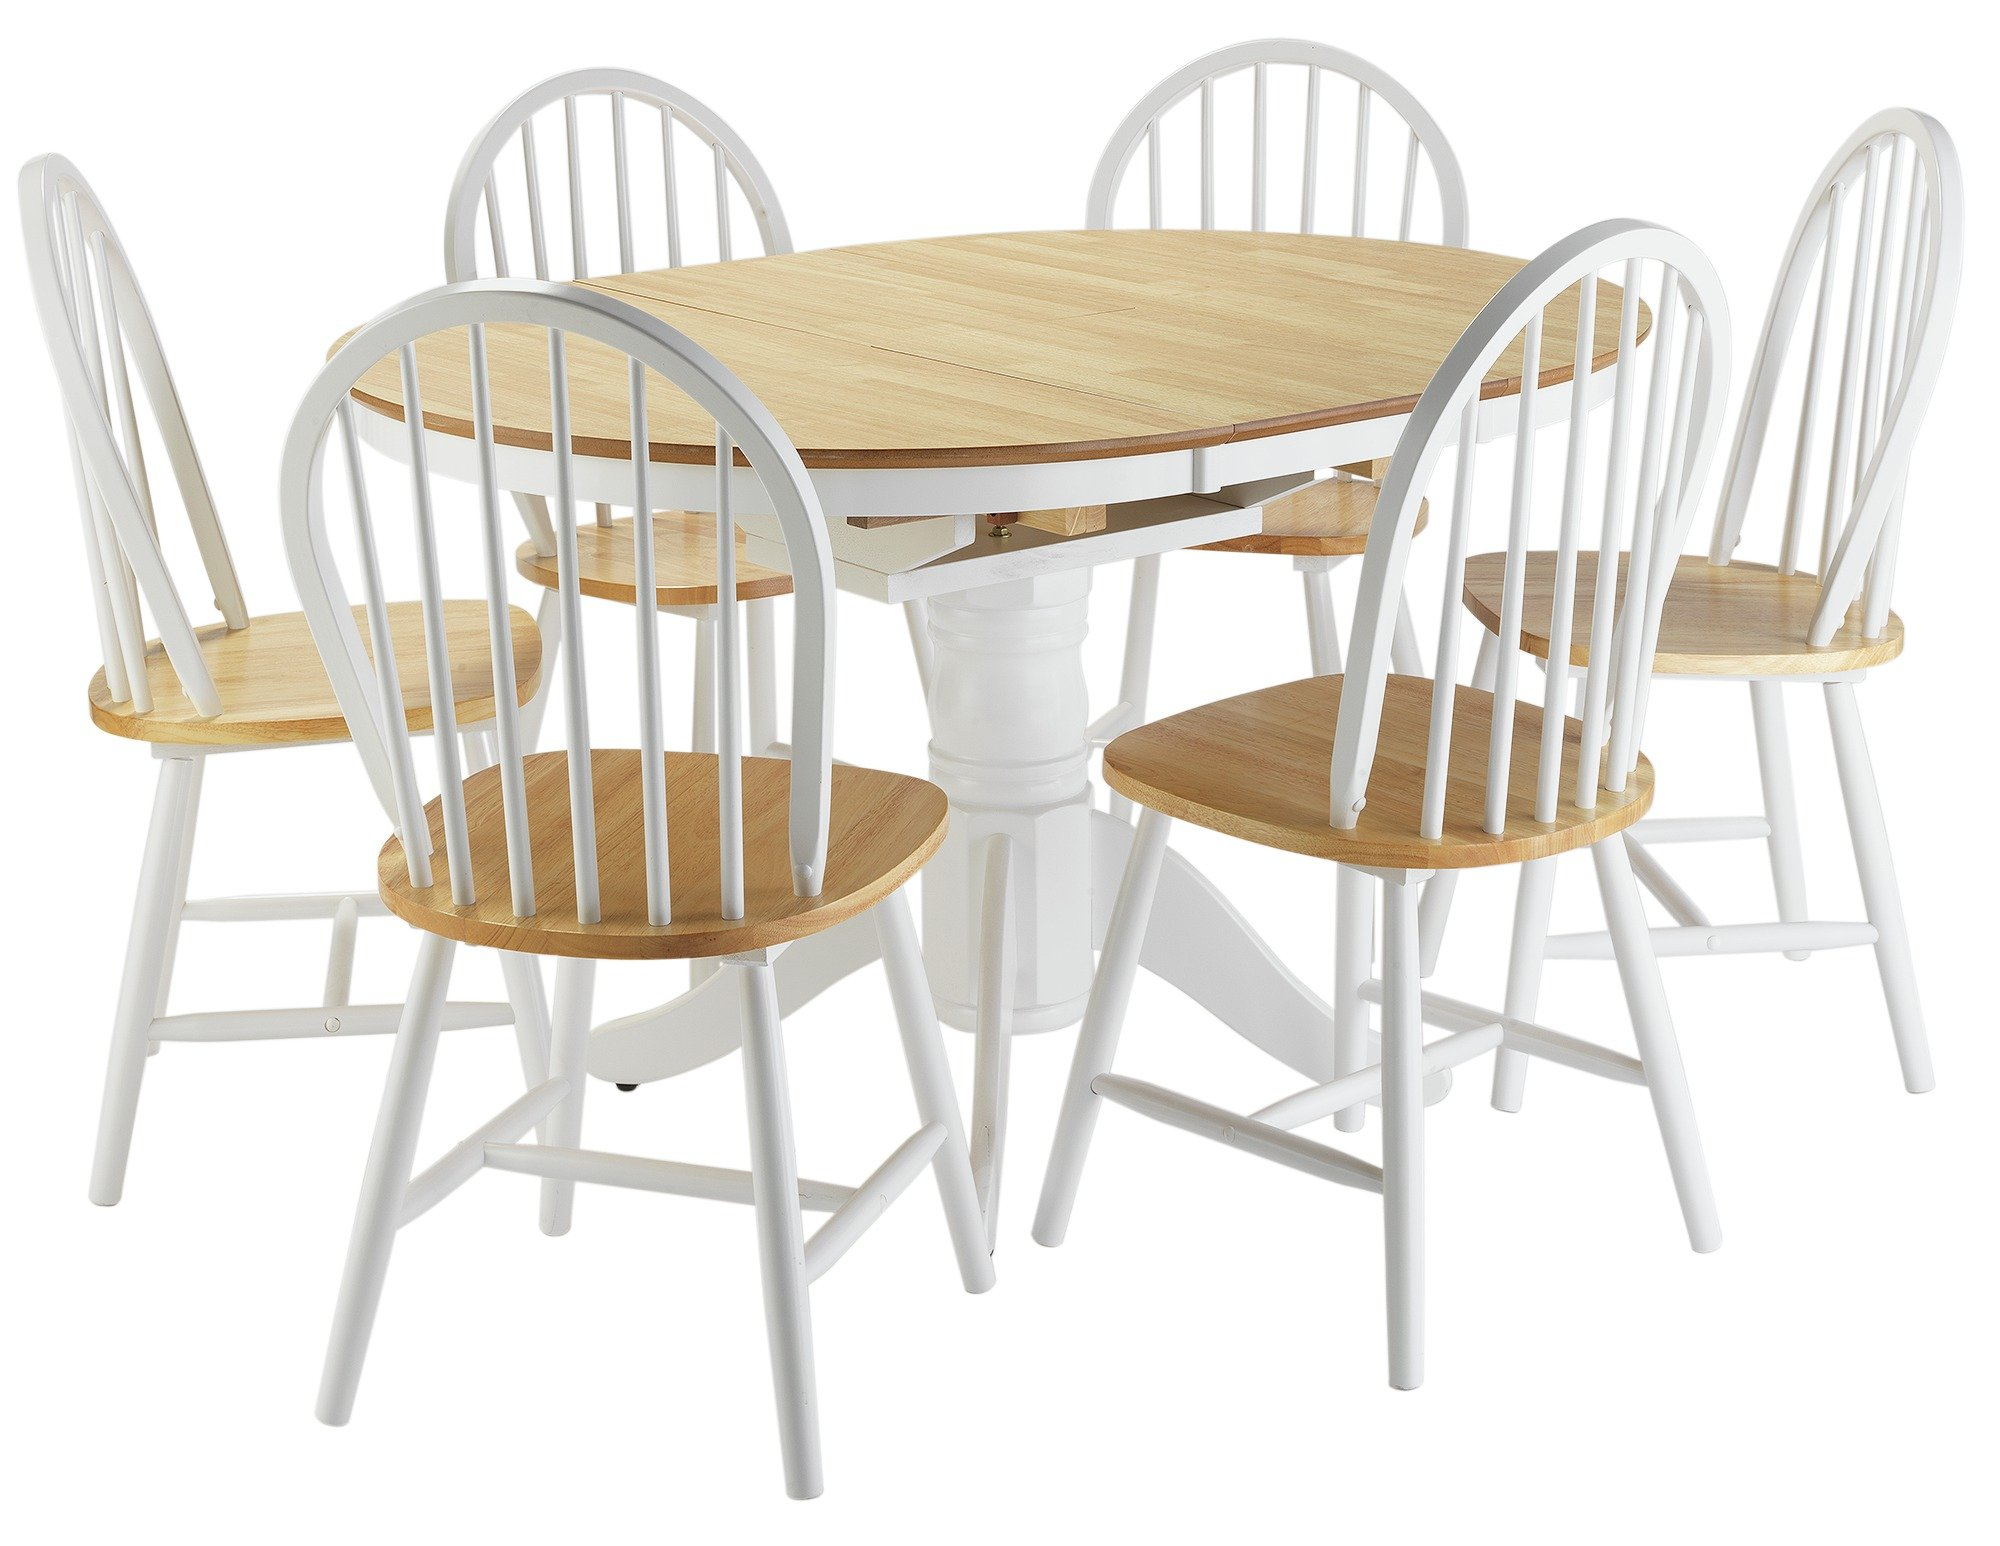 Buy Collection Kentucky Ext Dining Table and 6 Chairs Two  : 6035691RZ001AWebampw570amph513 from www.argos.co.uk size 570 x 513 jpeg 33kB